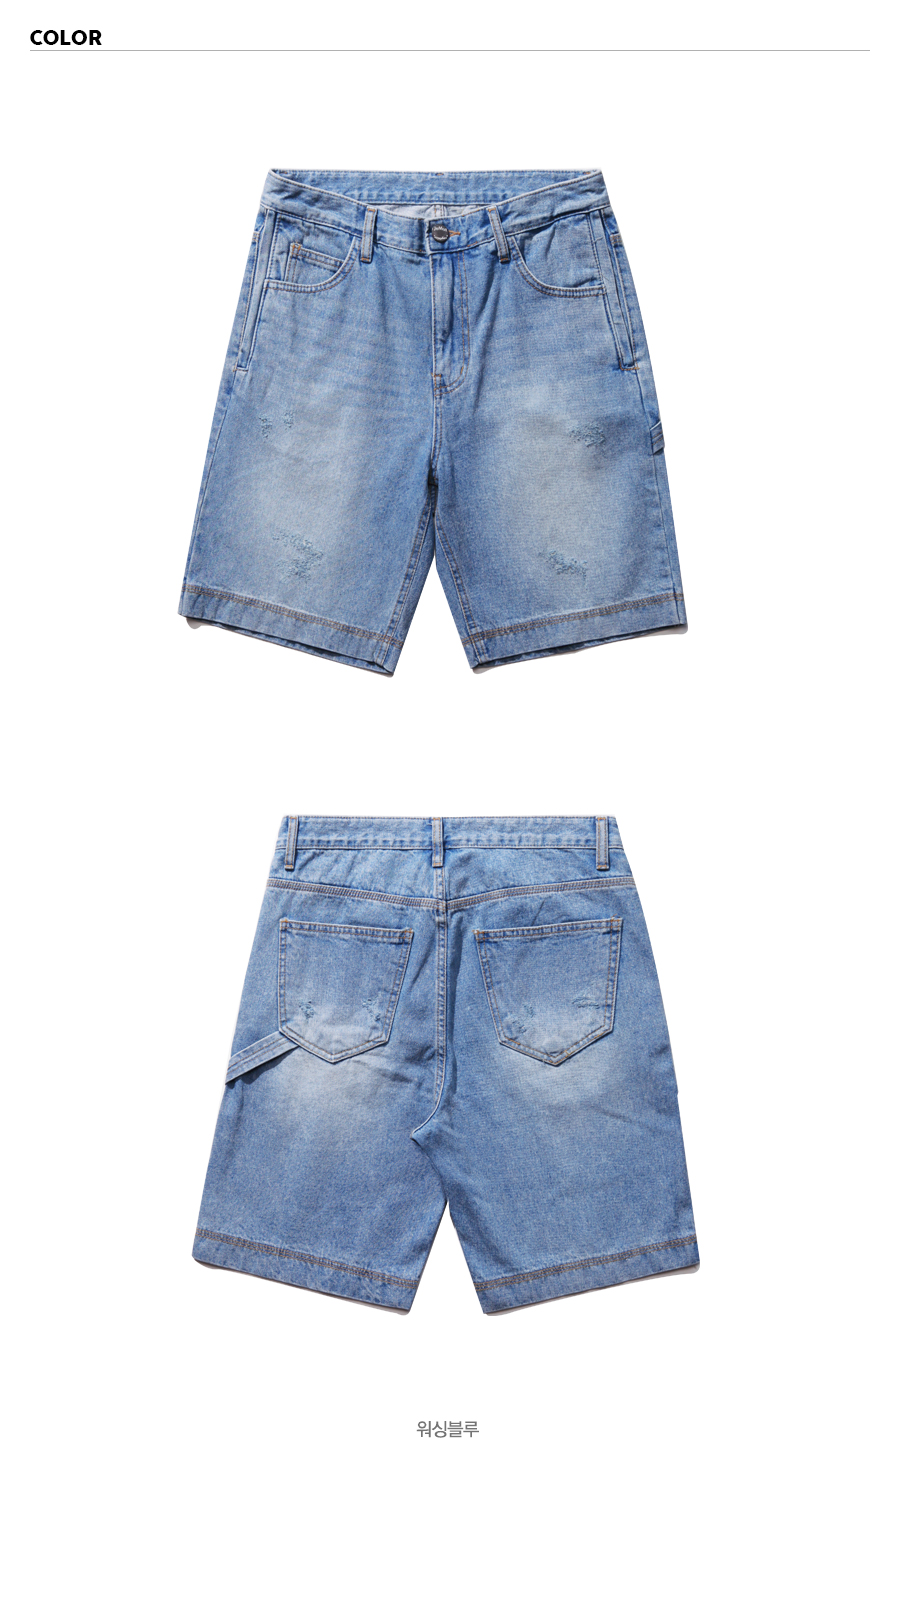 20180516_double_pocket_denim_shot_pants_color_kj.jpg